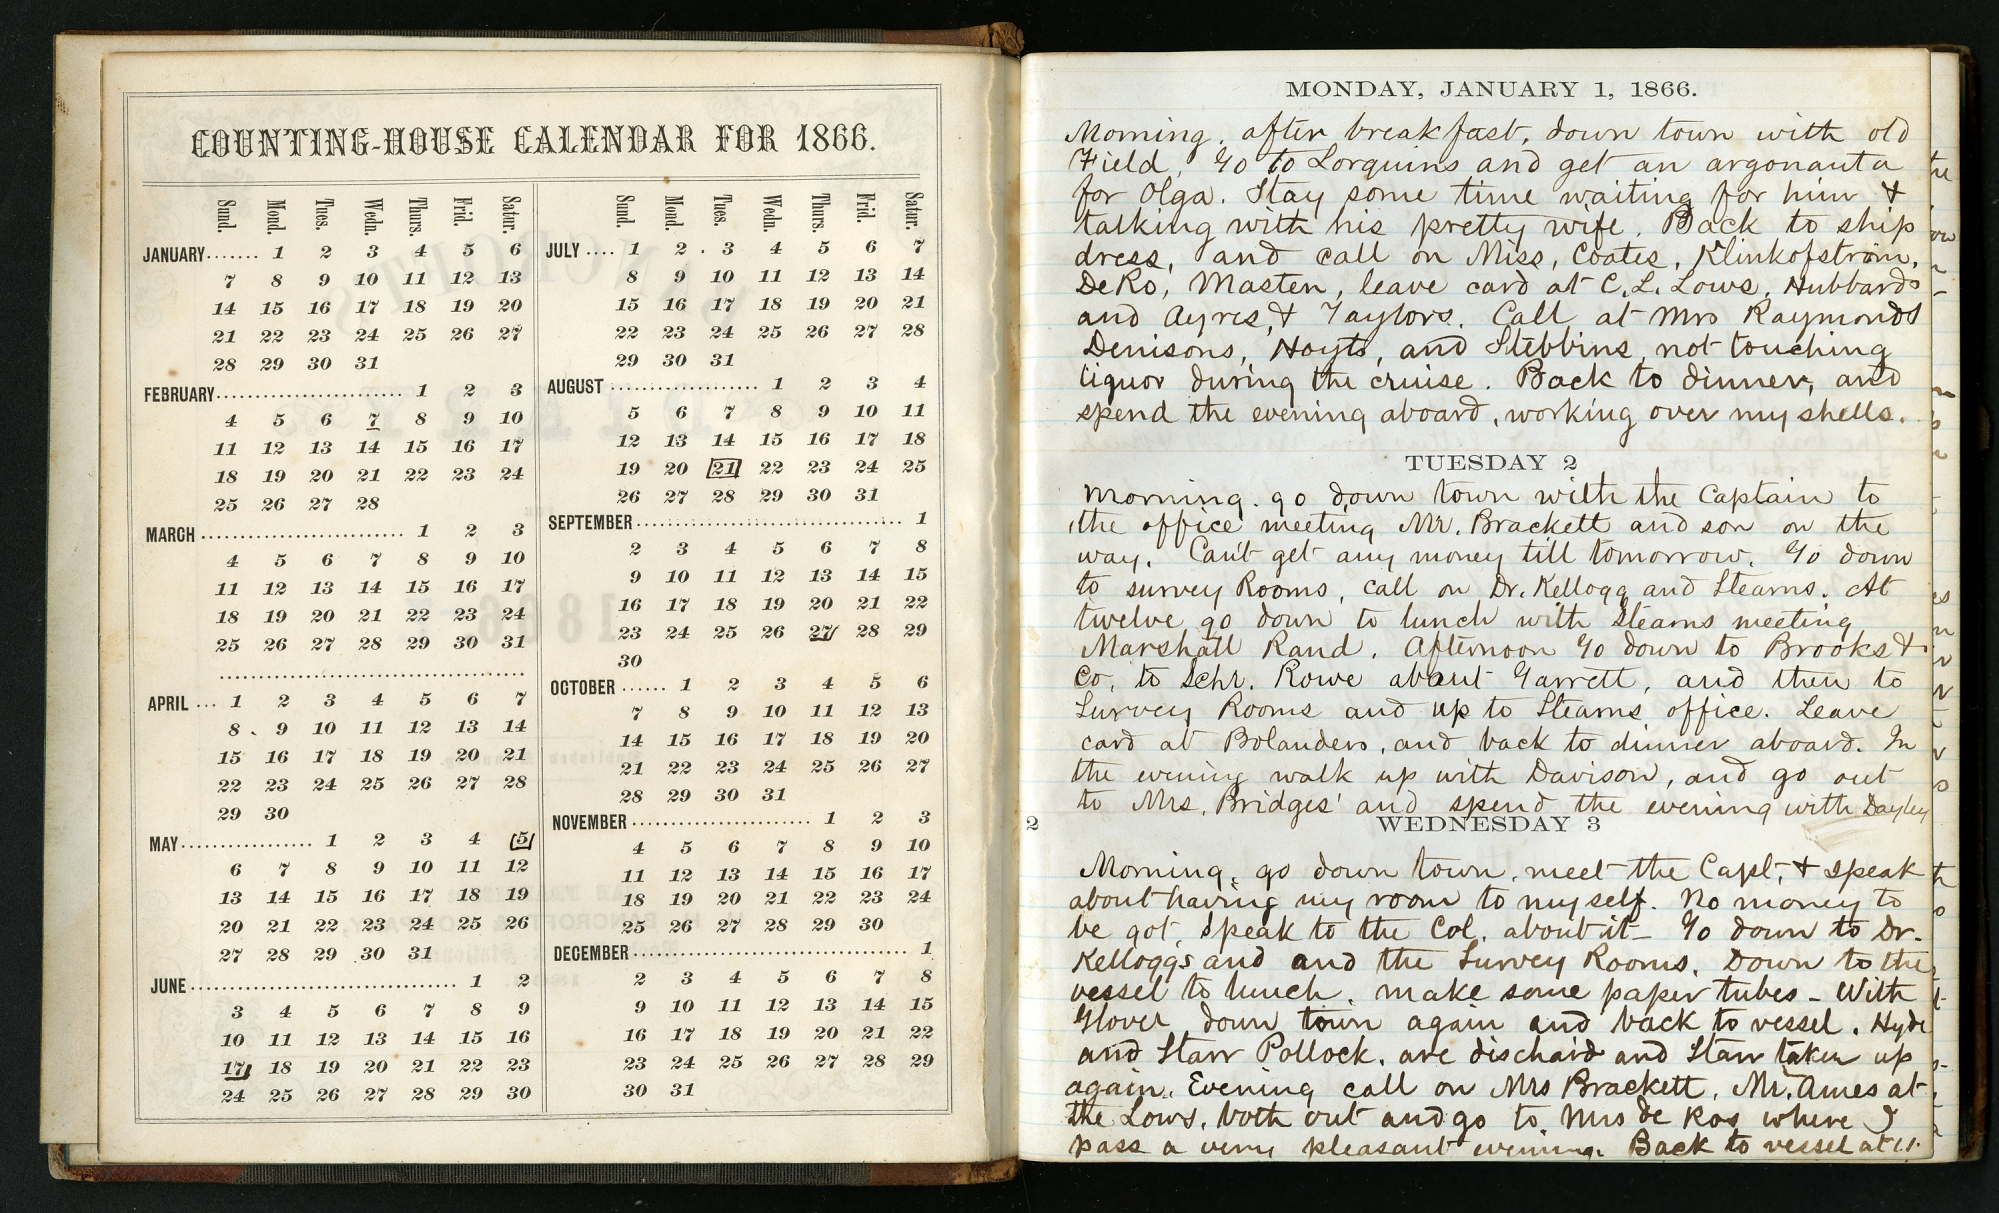 An open book with handwritten notes. The left page is an 1866 calendar. The right page is a a daily